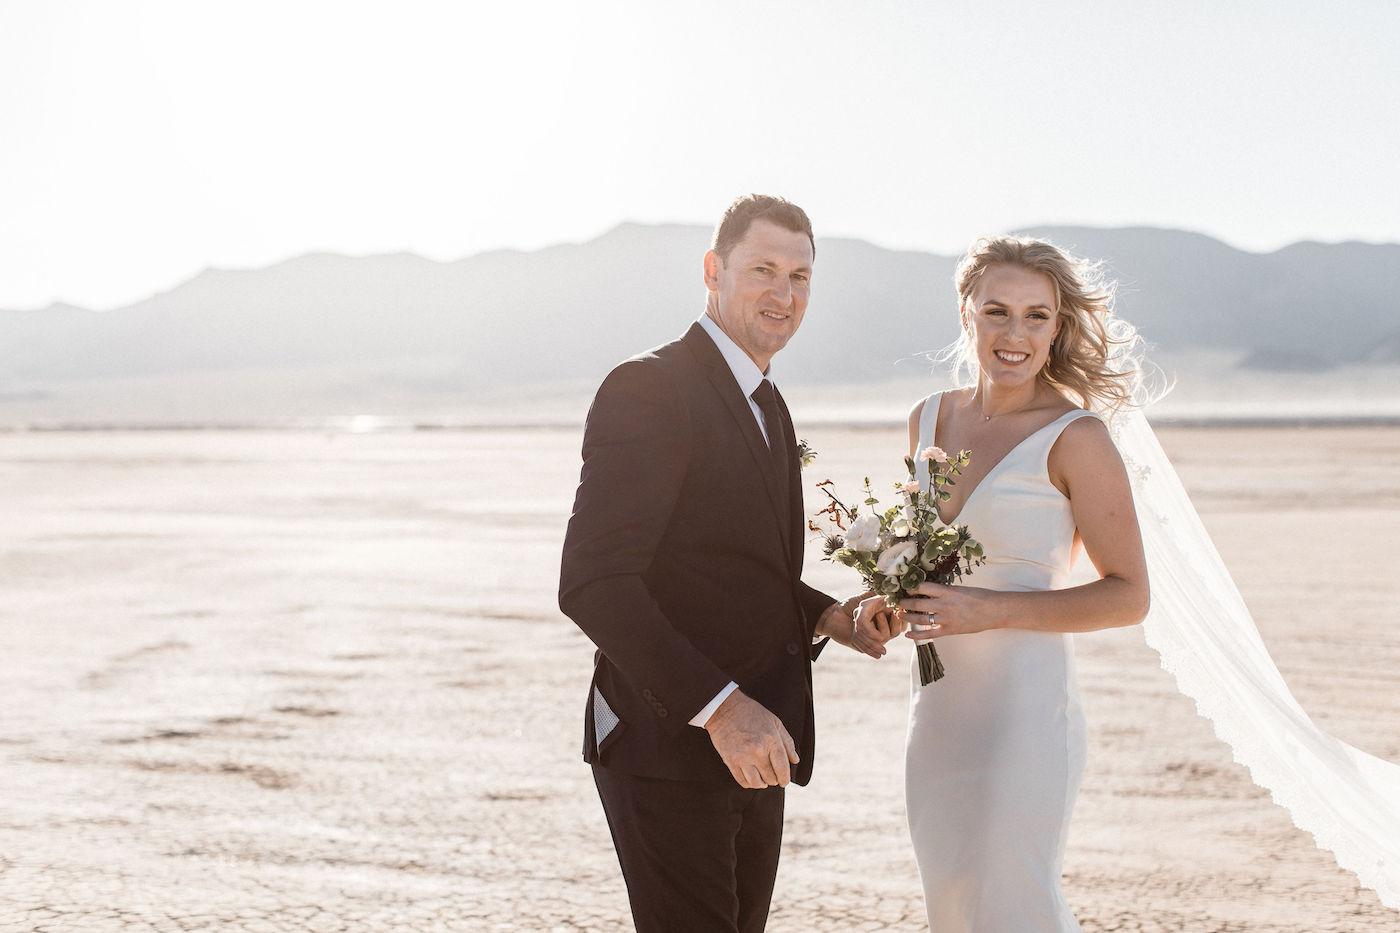 intimate flora pop las vegas elopement at dry lake bed00010.jpg